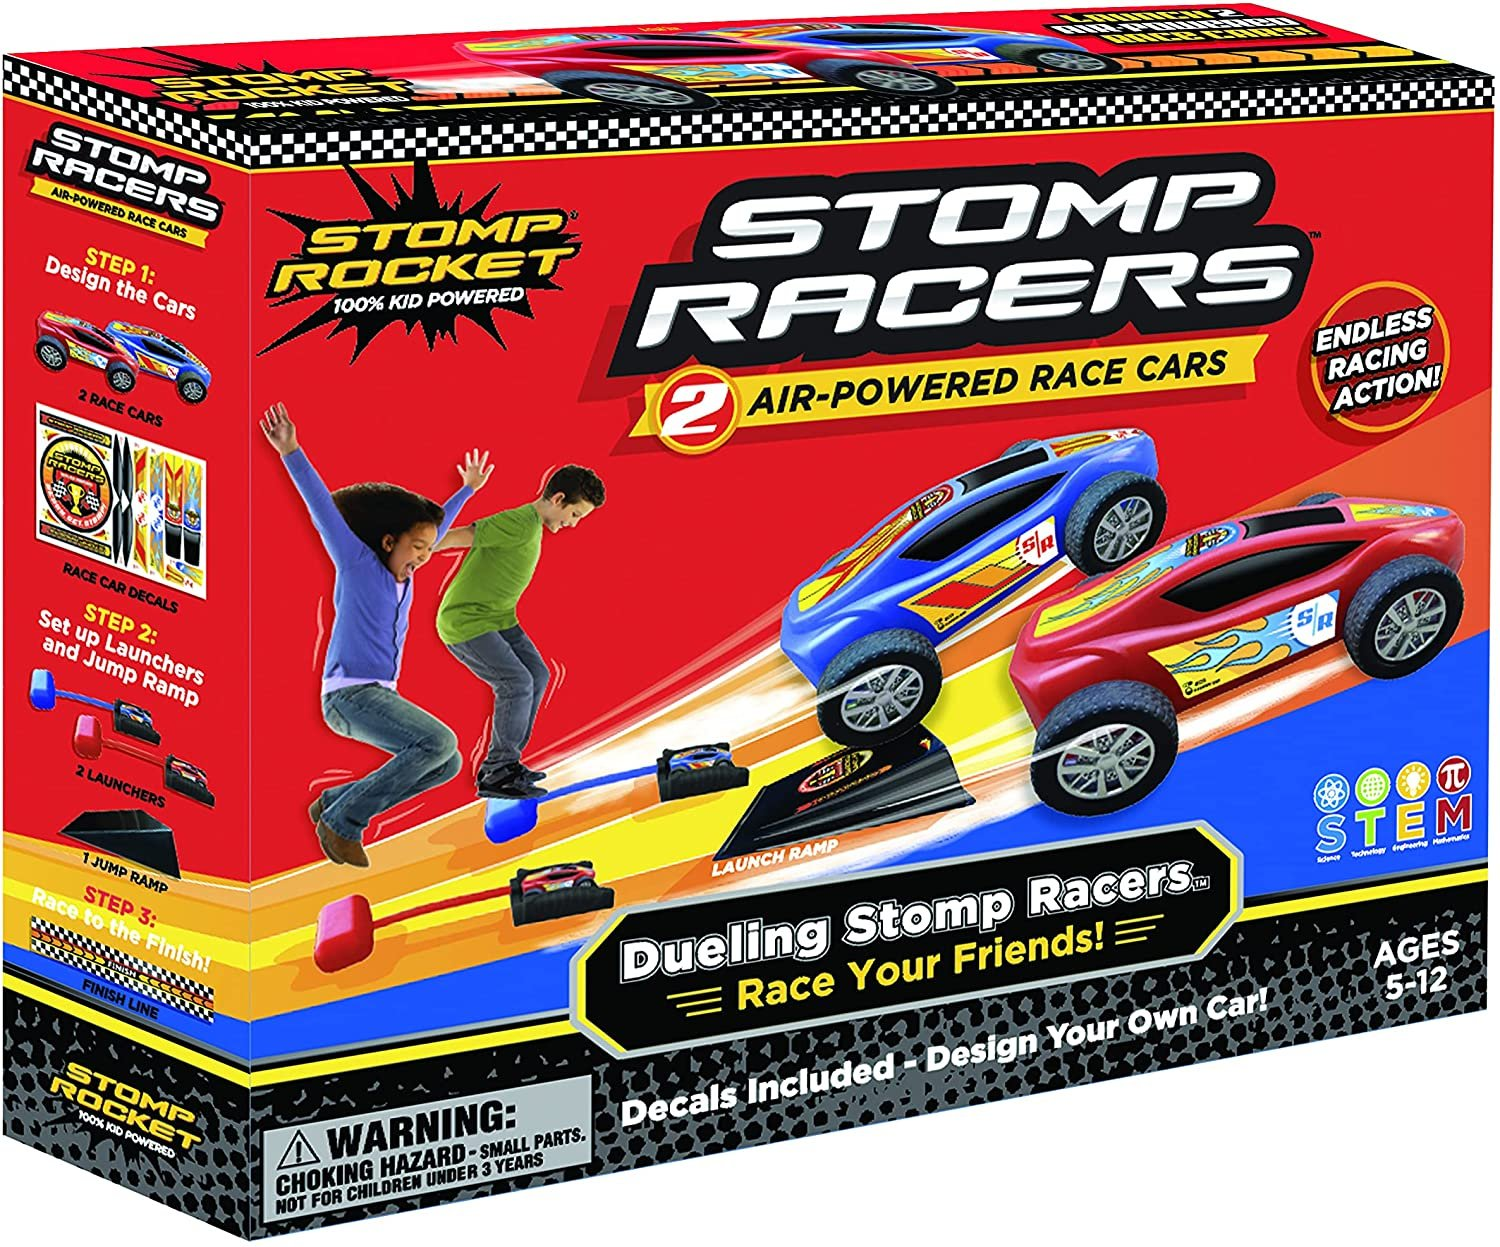 New Stomp Rocket Dueling Stomp Racers, 2 Toy Car Launchers and 2 Air Powered Cars with Ramp and Finish Line